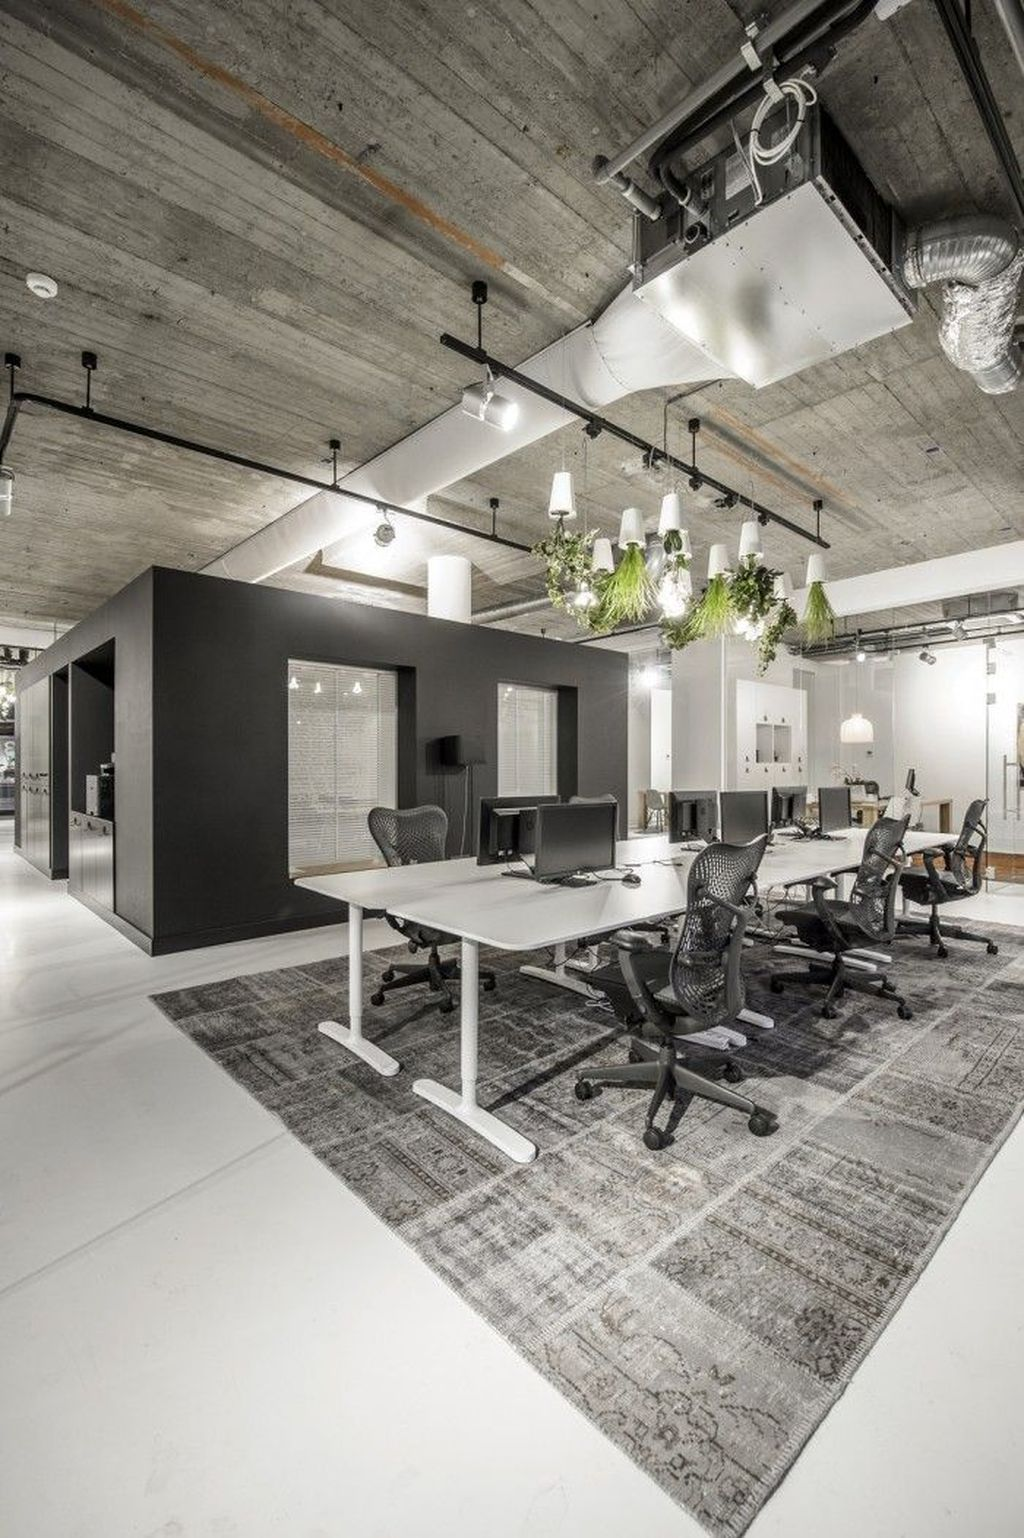 34 Awesome Modern Office Design Ideas Awesome Design Ideas Modern Modernofficei Contemporary Office Design Modern Office Design Industrial Office Design